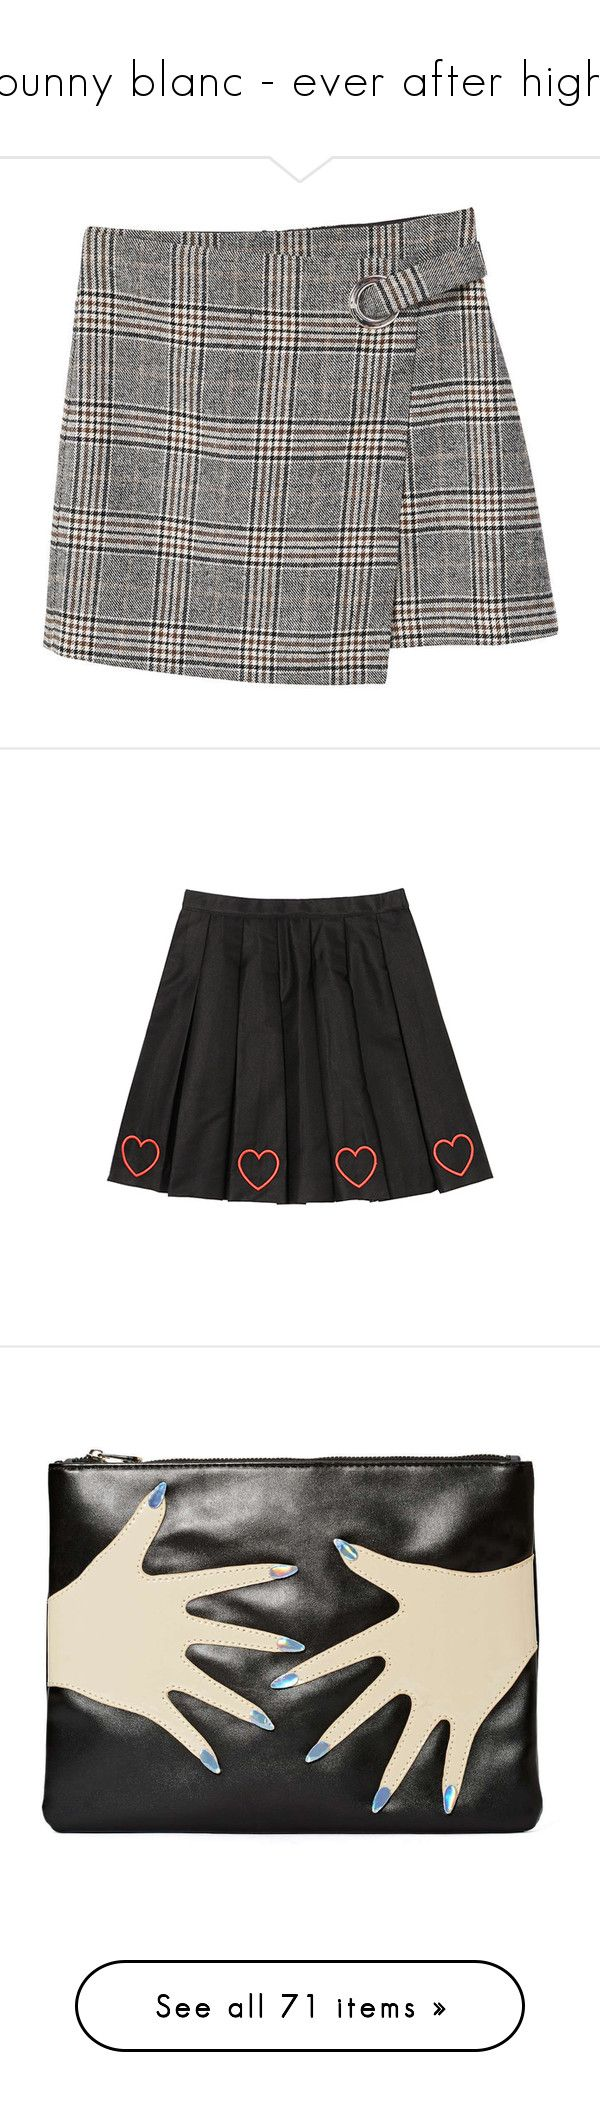 """""""bunny blanc - ever after high"""" by dwisniewska ❤ liked on Polyvore featuring skirts, bottoms, zipper skirt, mango skirts, wool skirt, checkerboard skirt, zip skirt, mini skirts, clothing - skirts and pleated skirt"""